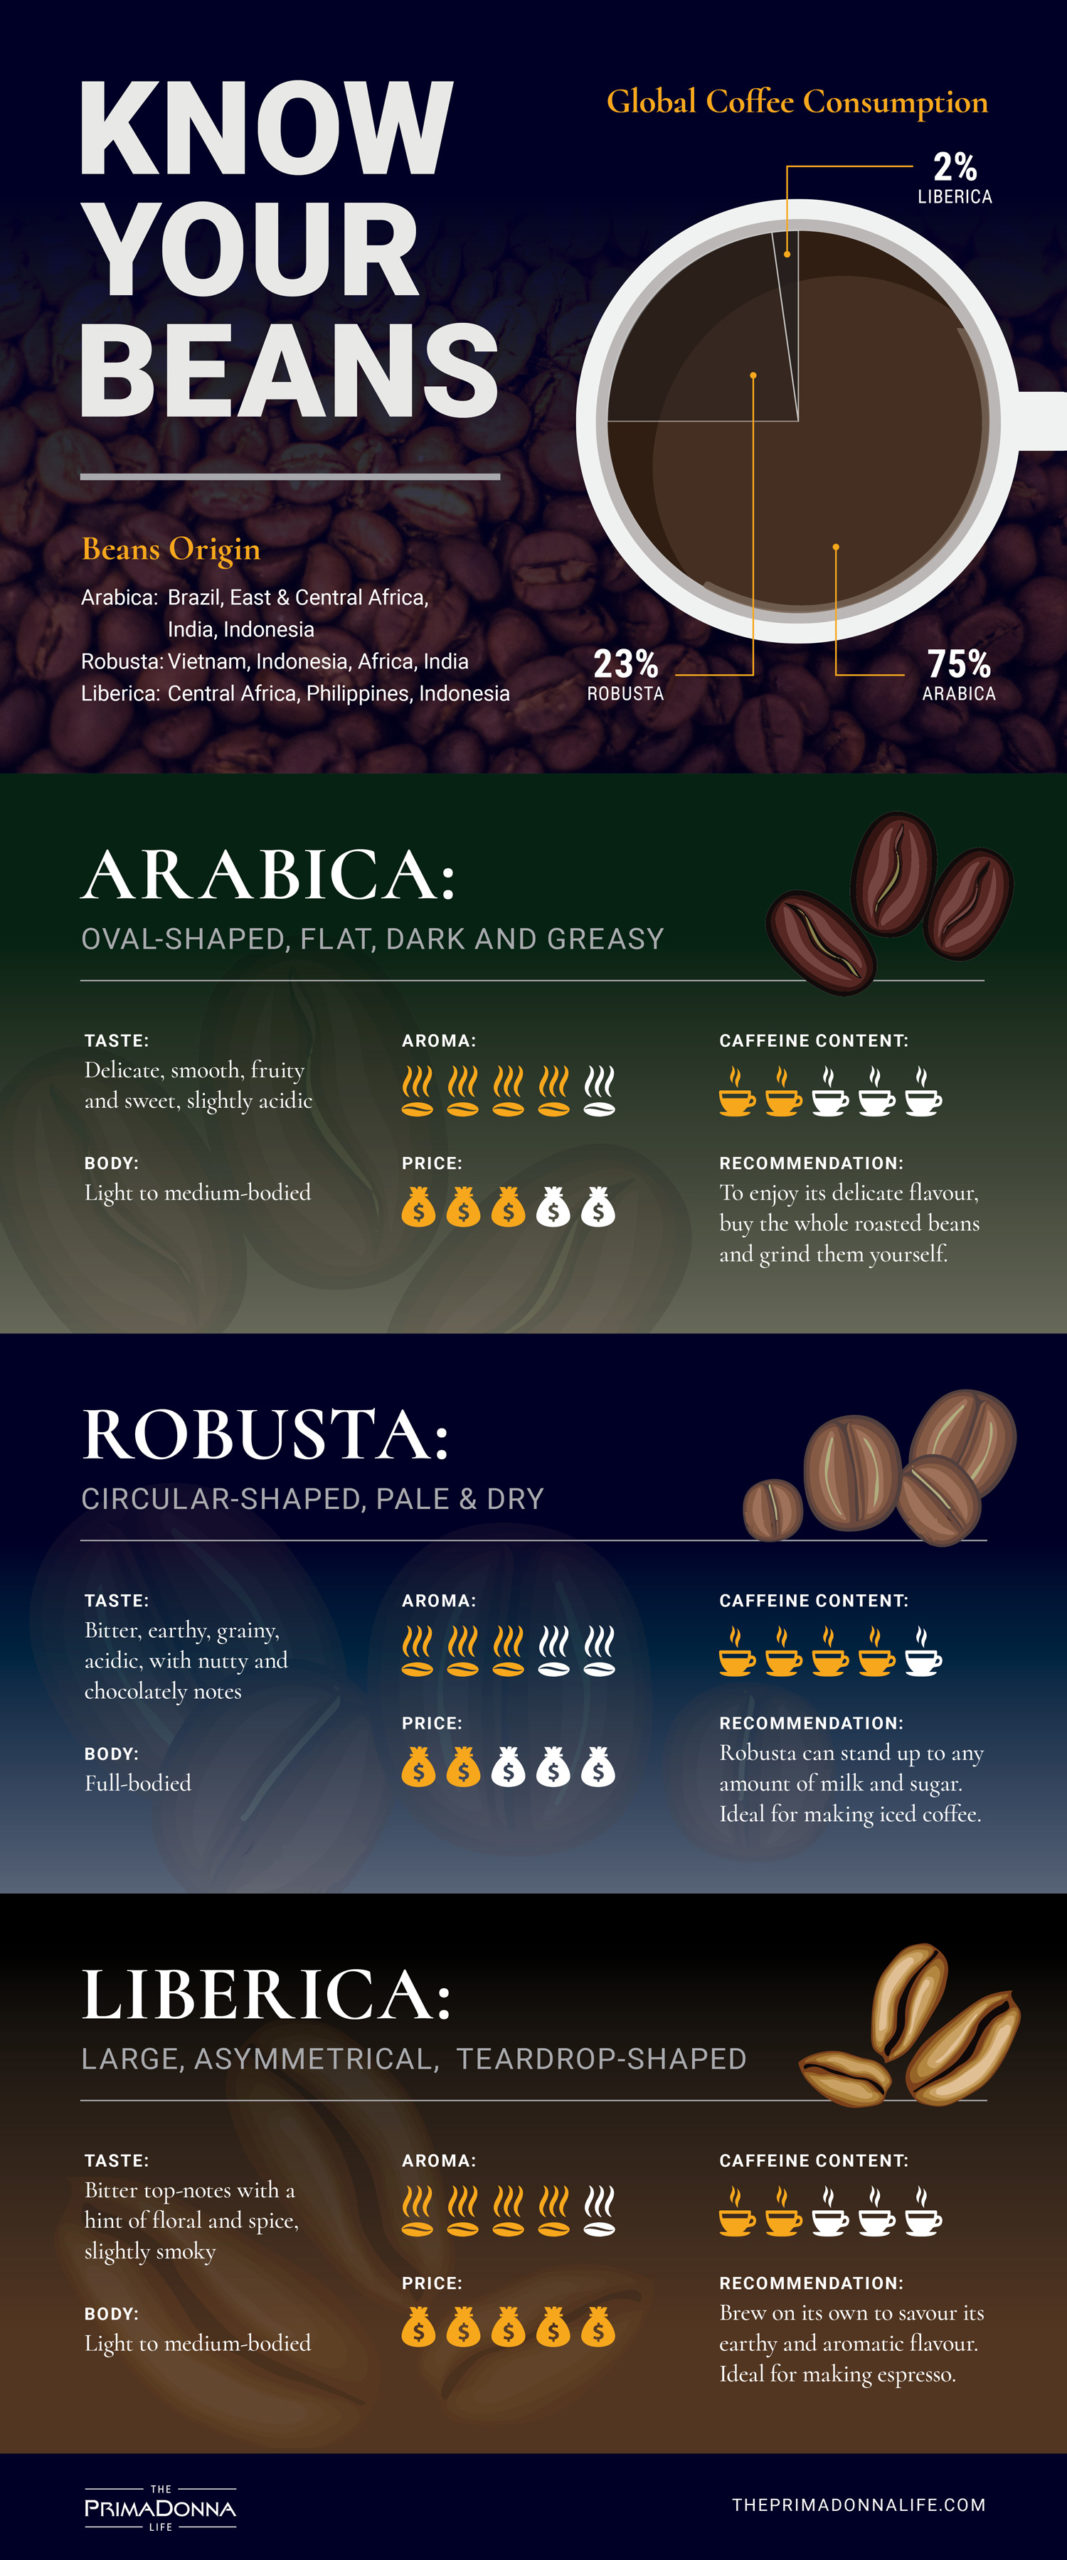 an infographic about arabica, robusta, and liberica coffee beans